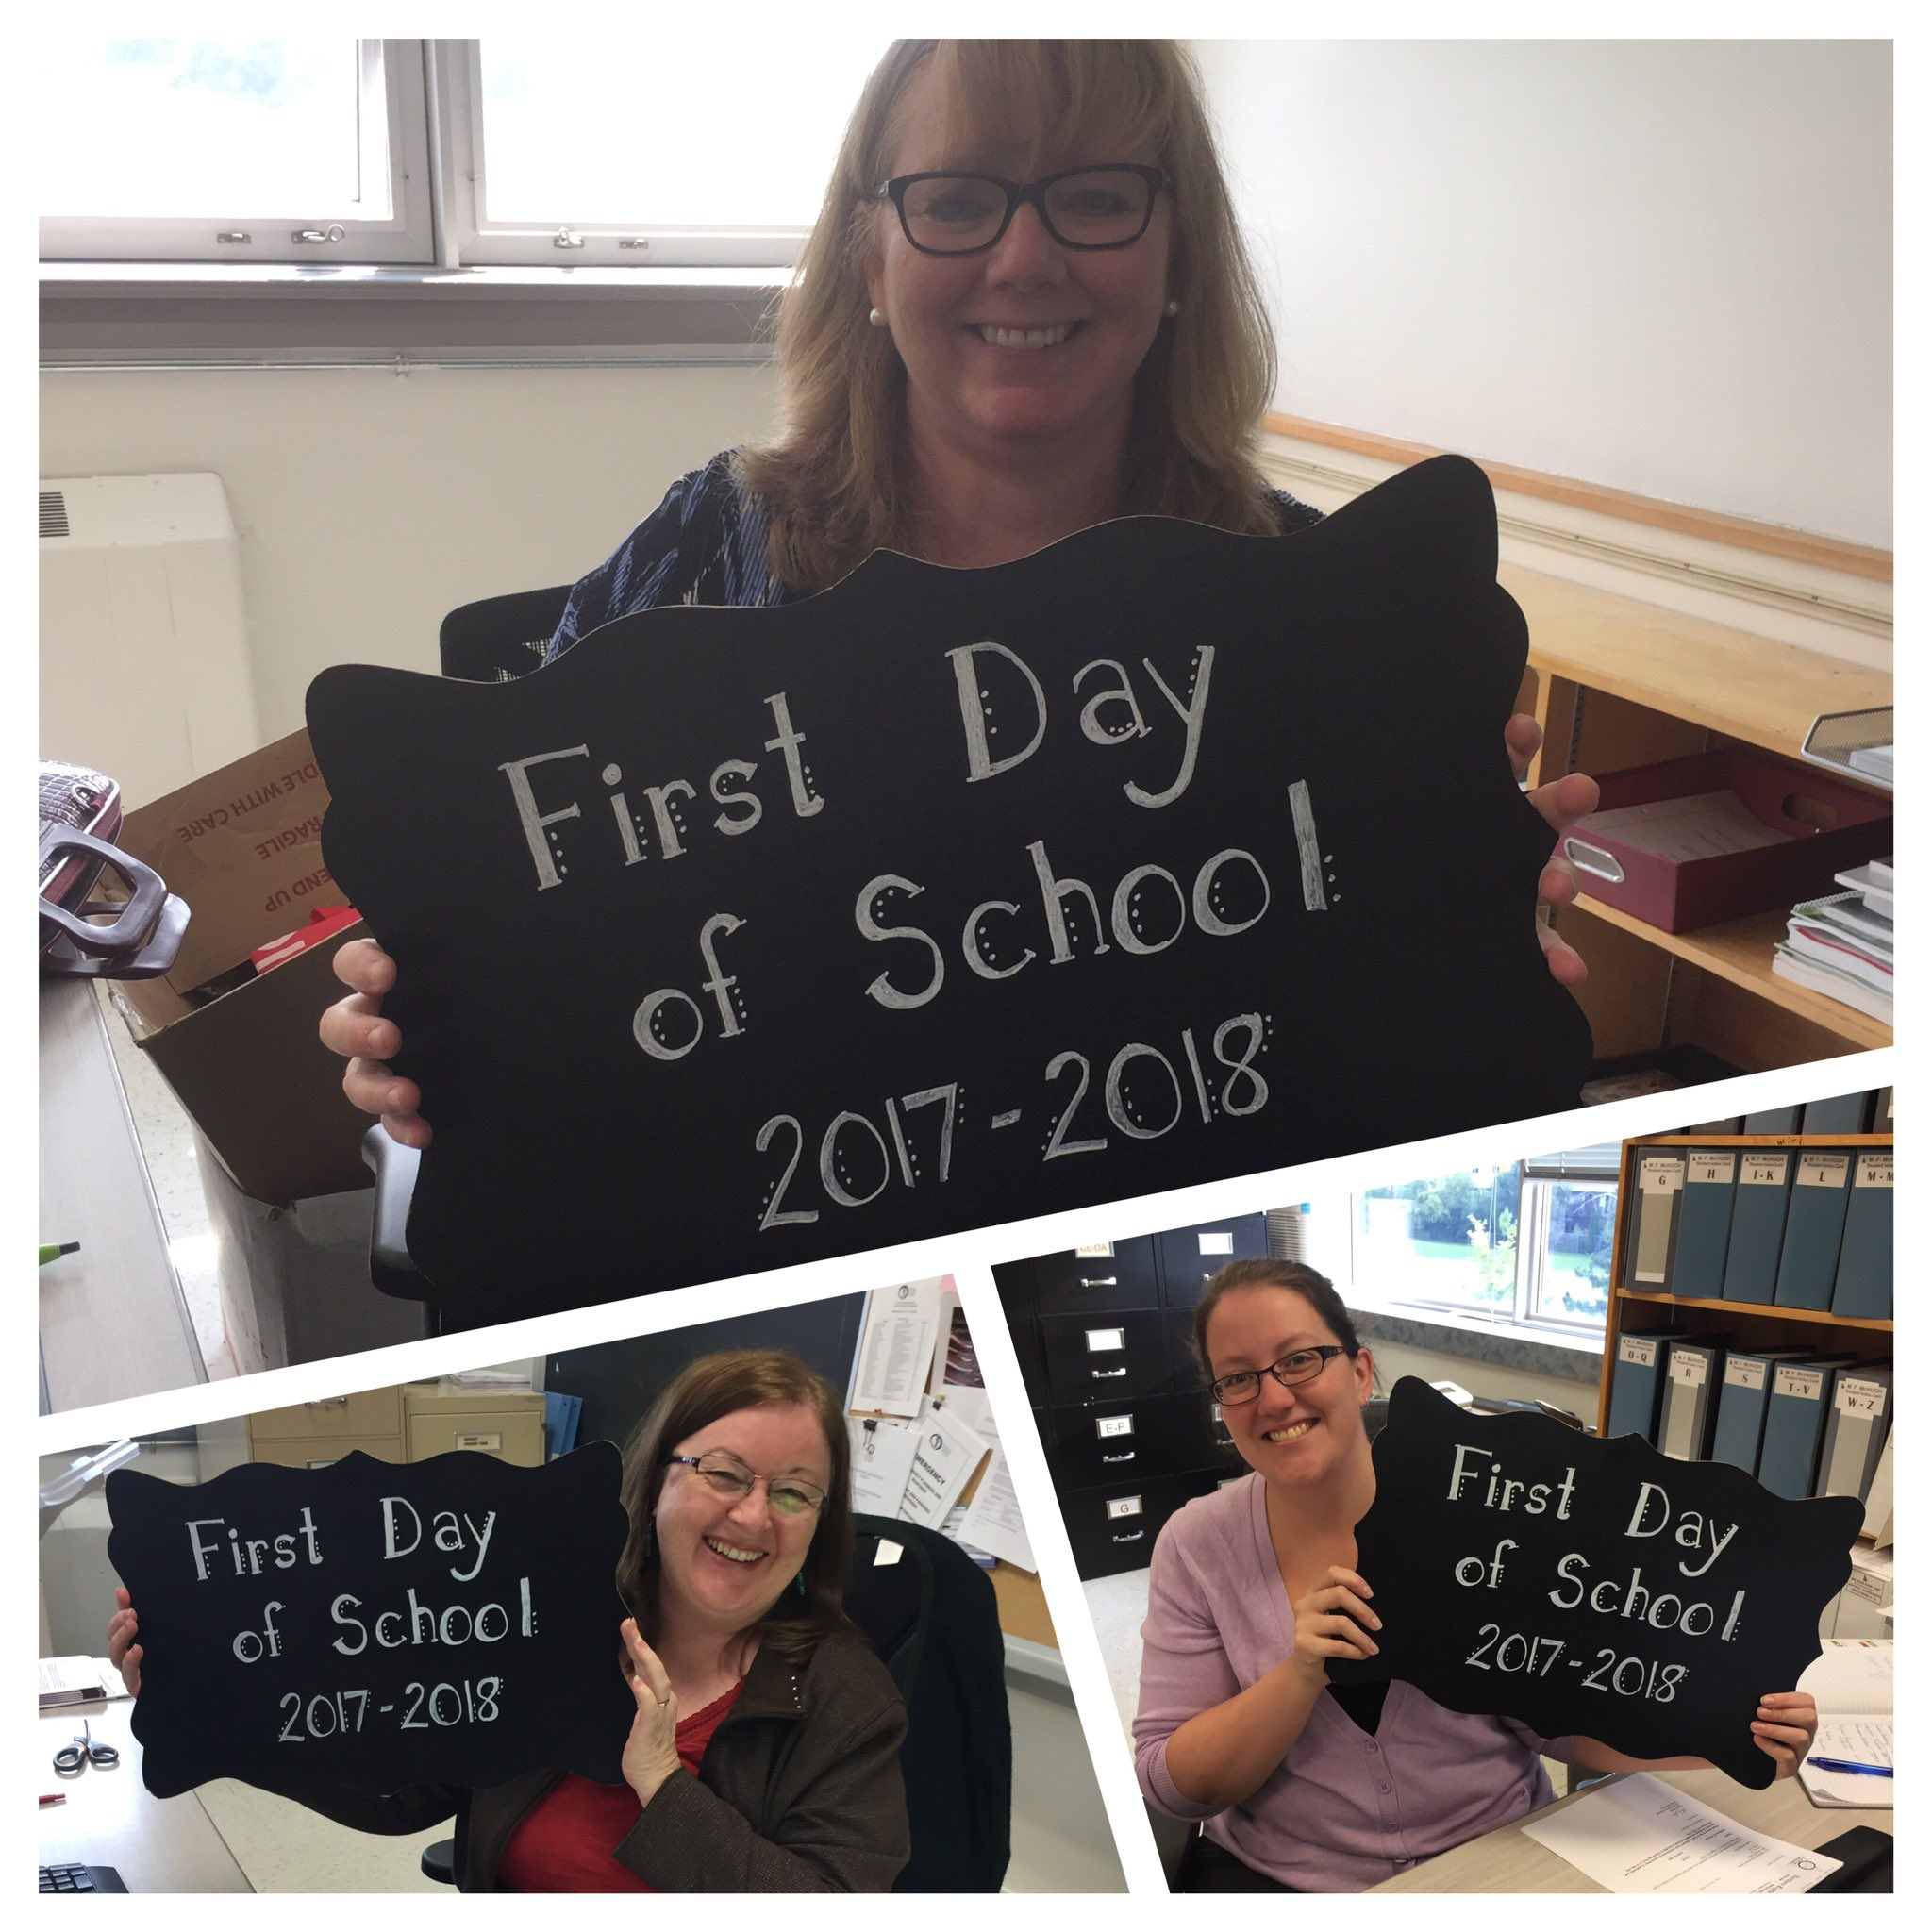 @McHughEduCentre staff are ready for the first day! #ocsbfirstday https://t.co/IRLI6qHR63